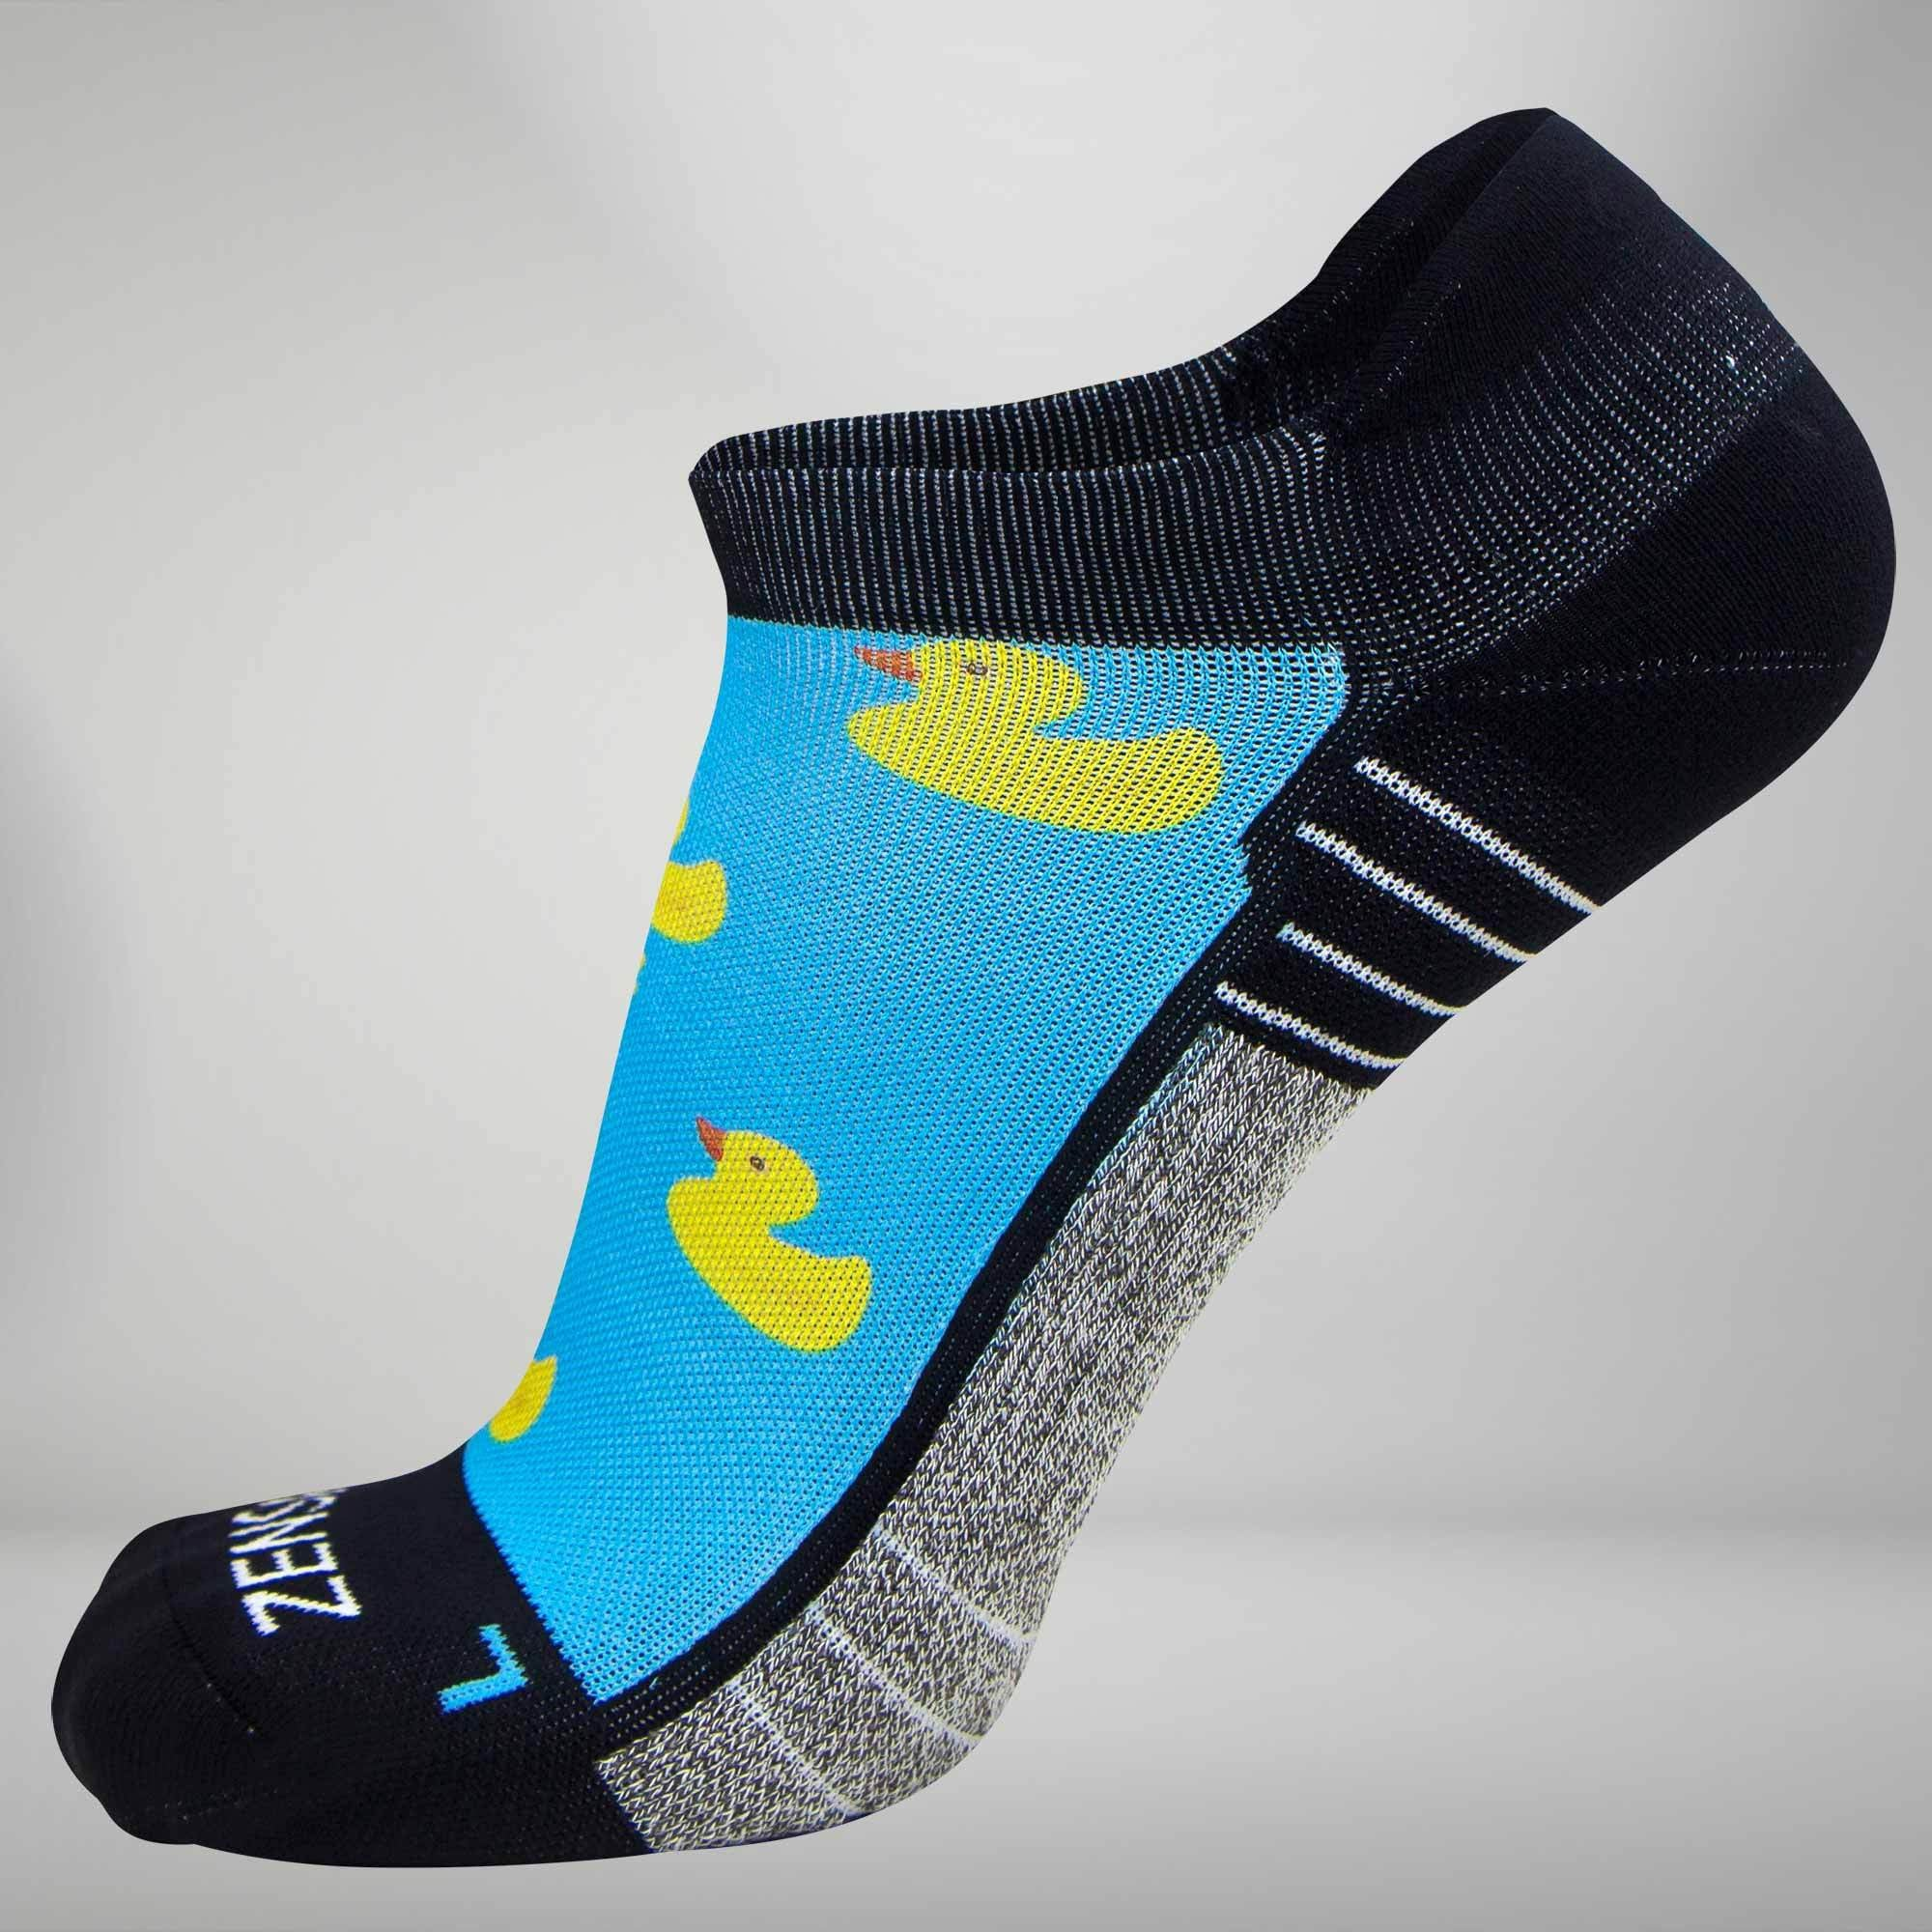 Rubber Ducky Socks (No Show)